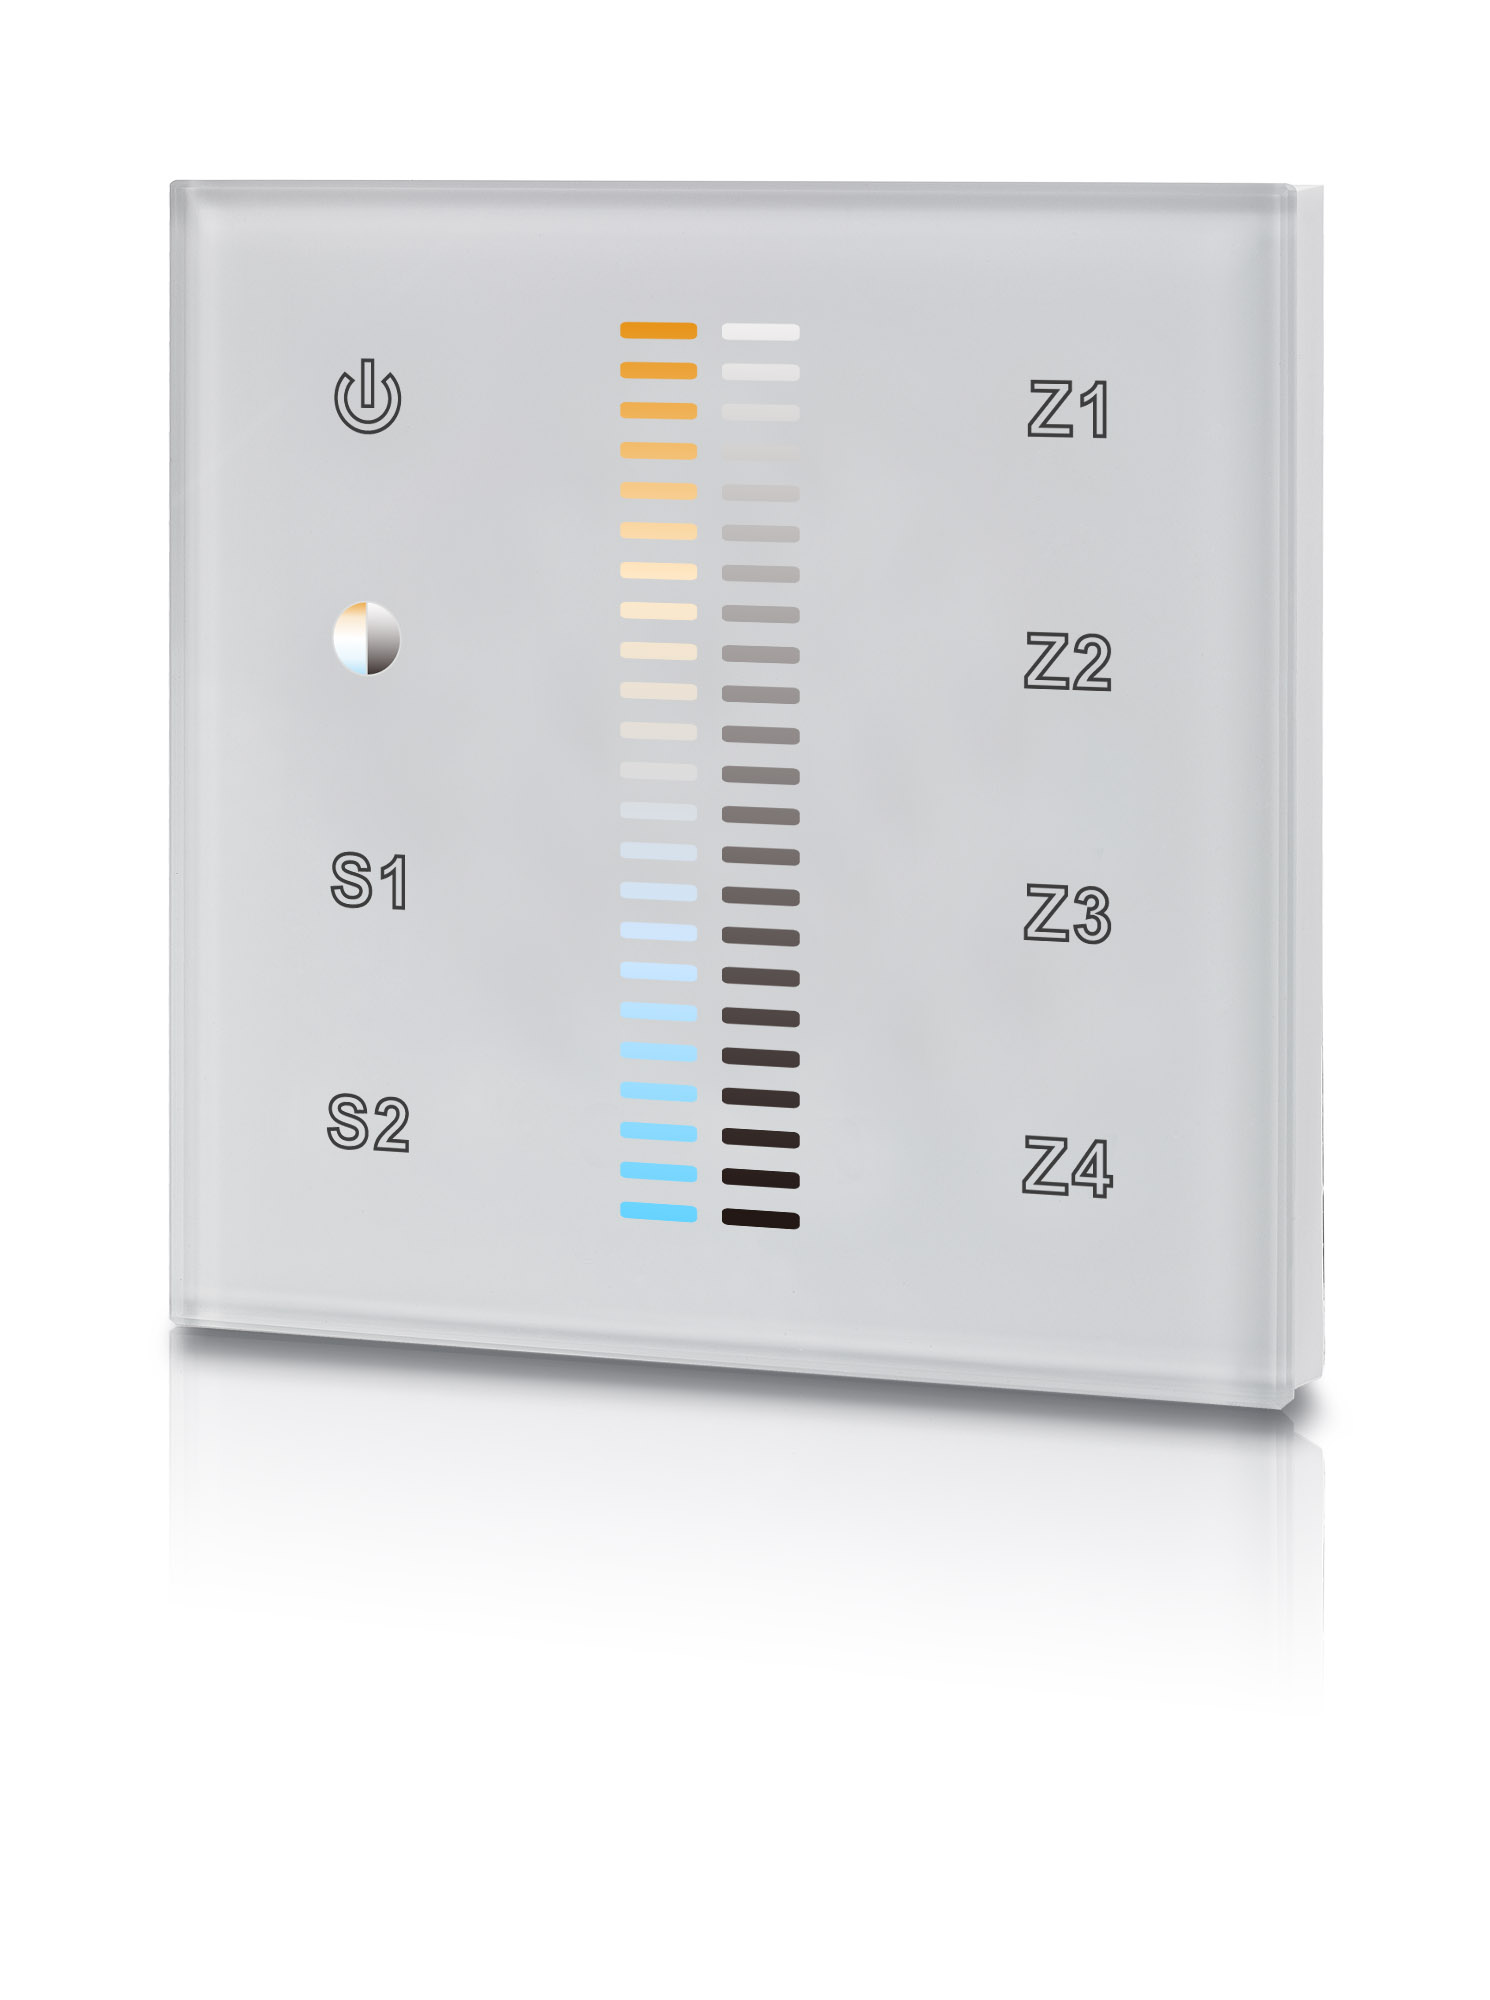 Wall Mounted Colour Temperature Controller